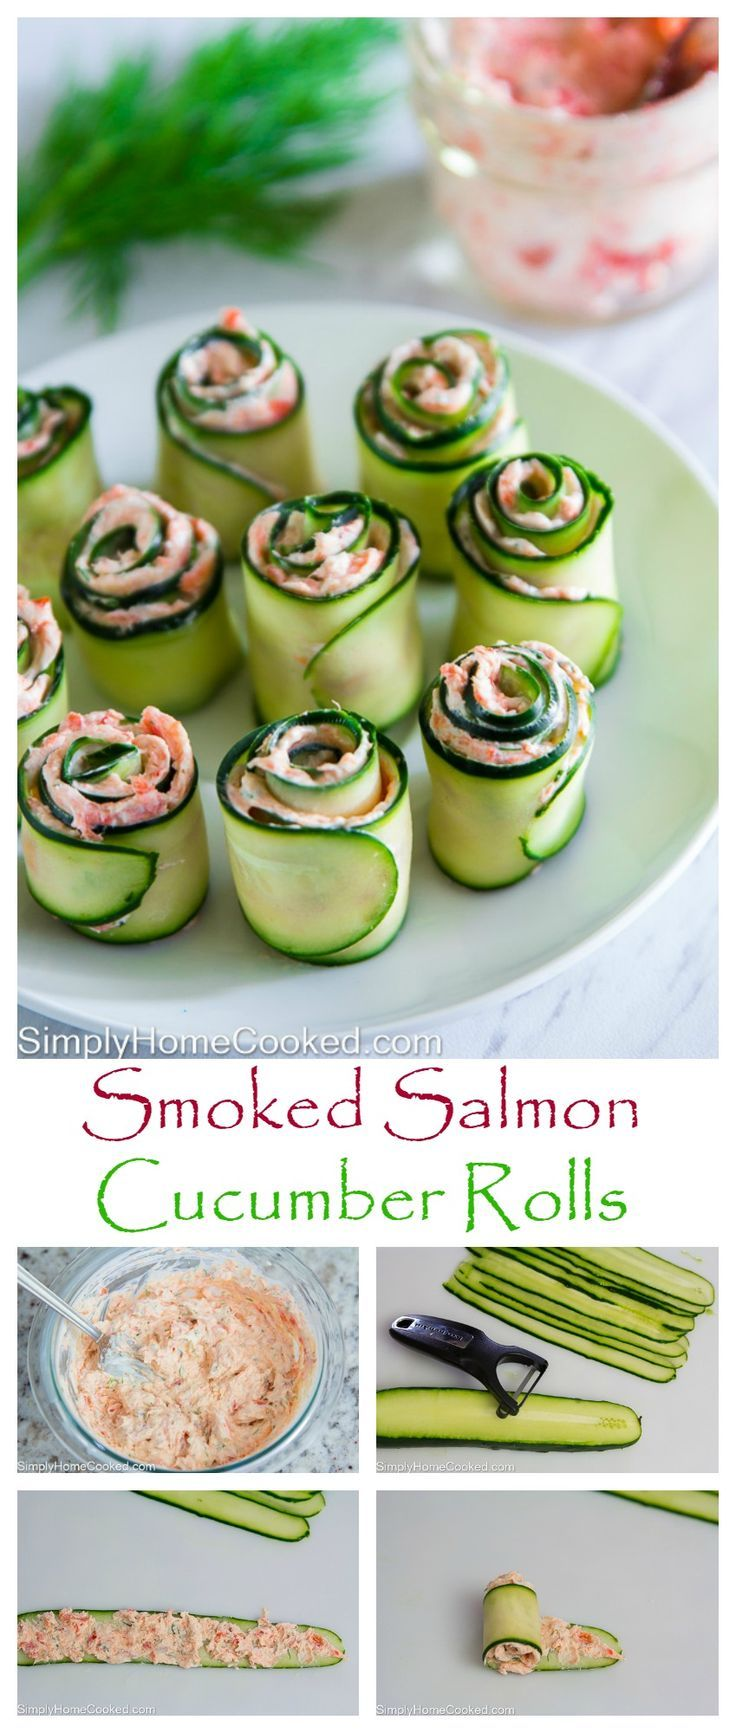 17 Best images about Easy Appetizers on Pinterest ...